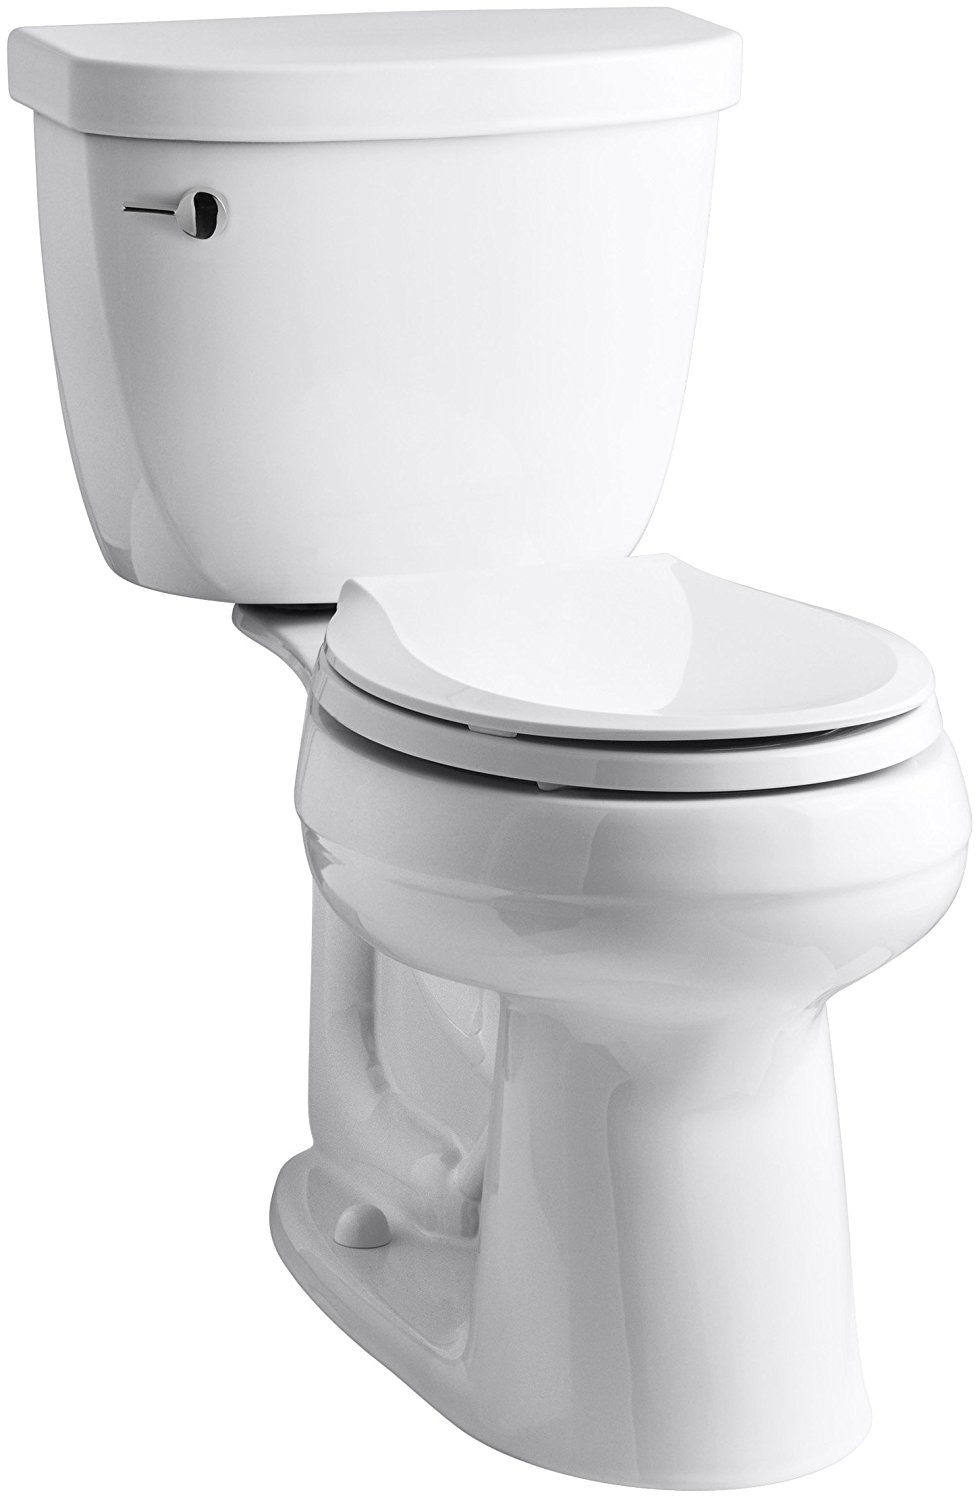 KOHLER Cimarron Comfort Height Toilet Review